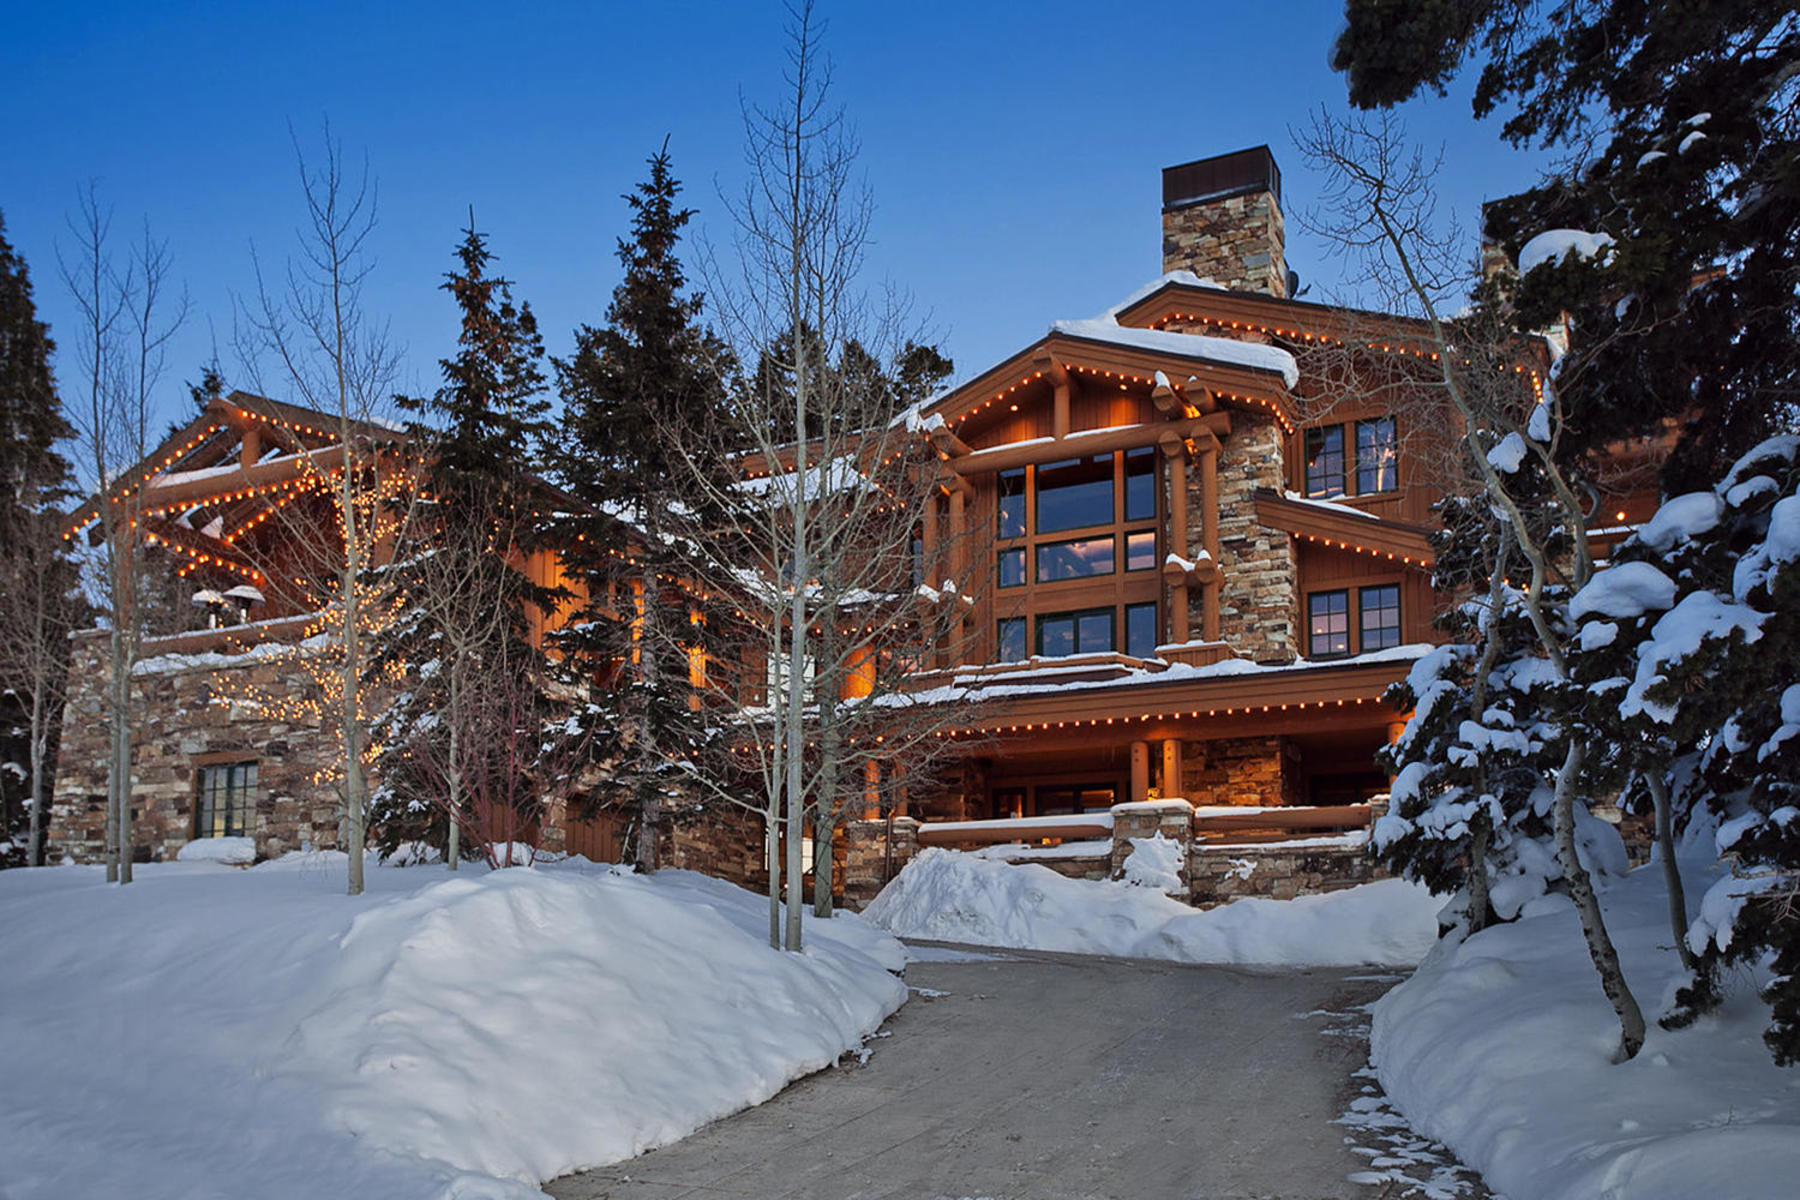 Casa Unifamiliar por un Venta en Magnificent Bald Eagle Ski Lodge Home 7831 Hawk Ct Park City, Utah, 84060 Estados Unidos